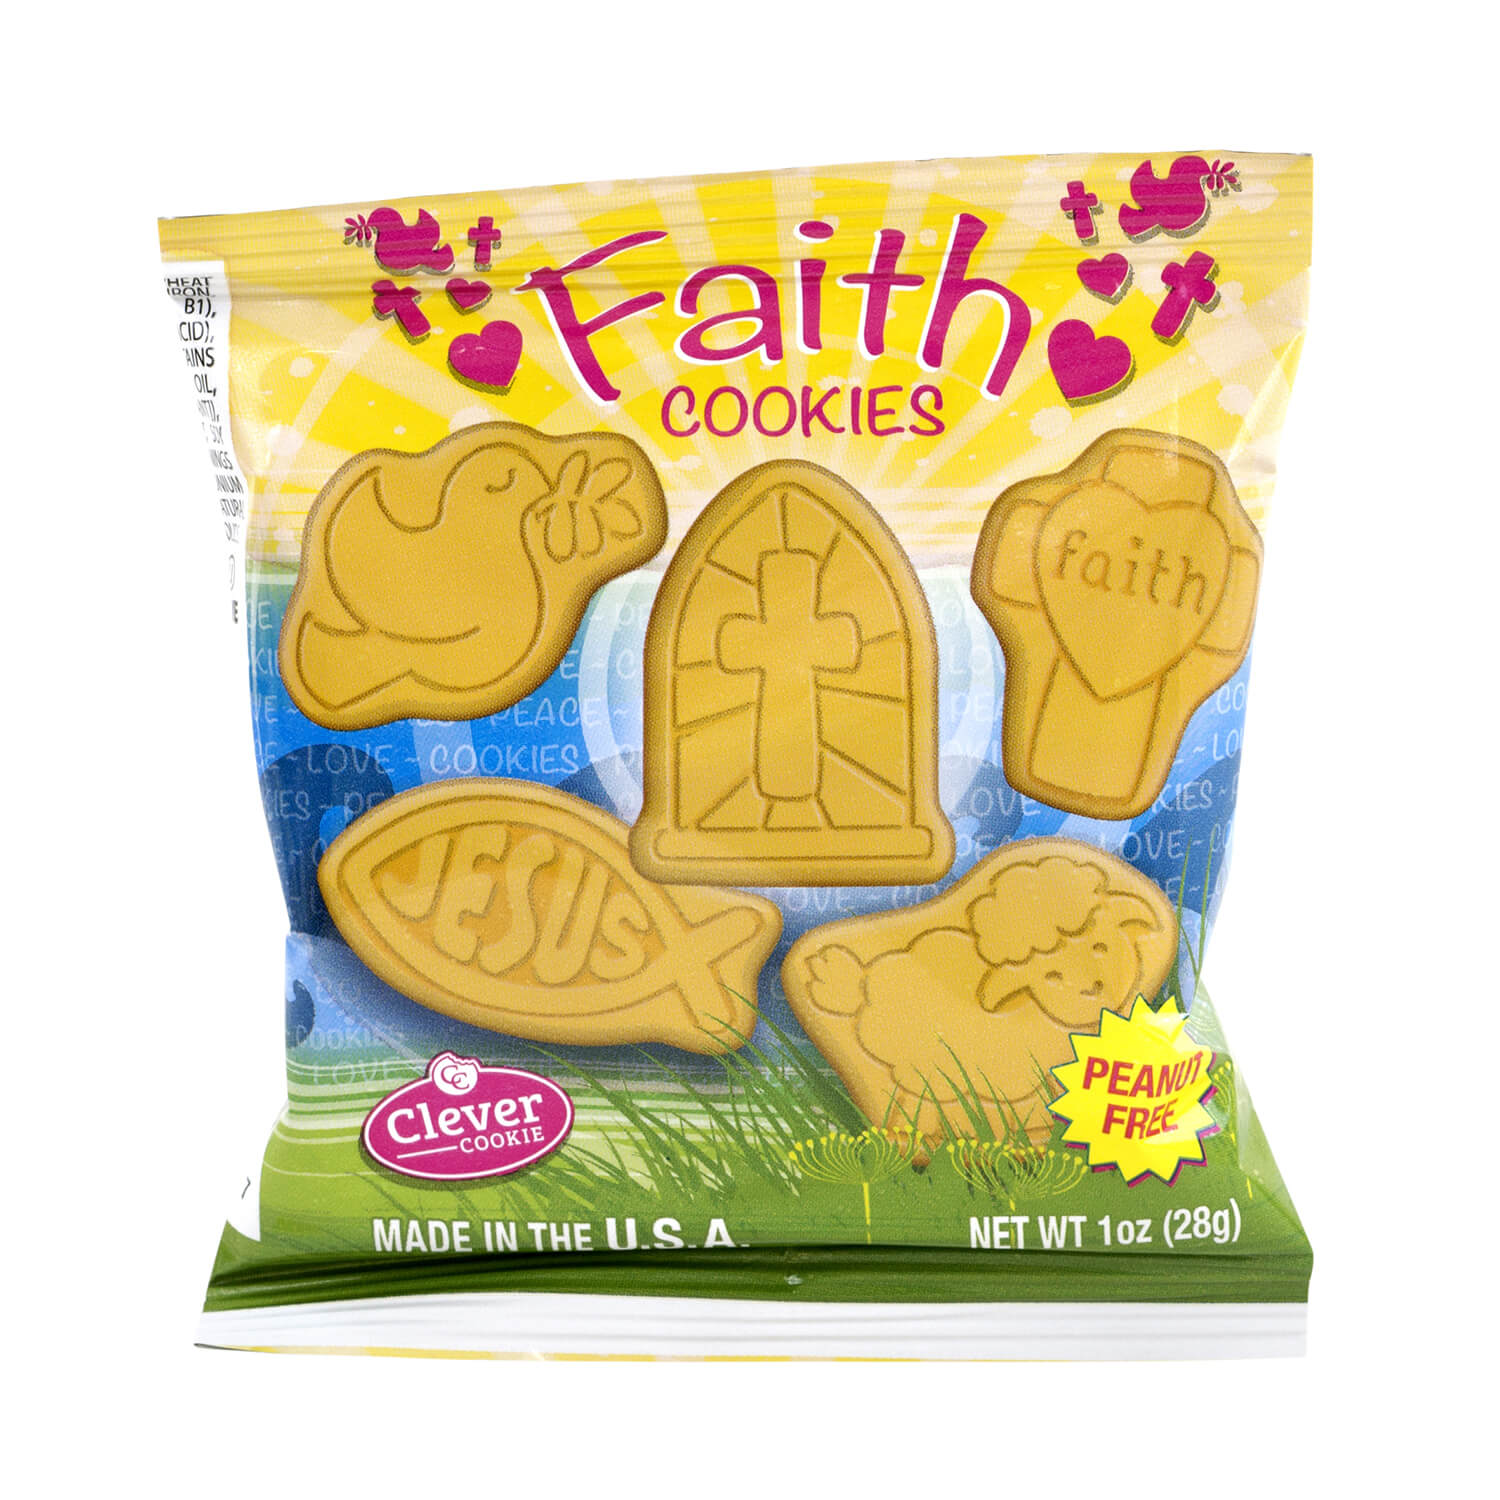 Faith Cookies - 85 Count